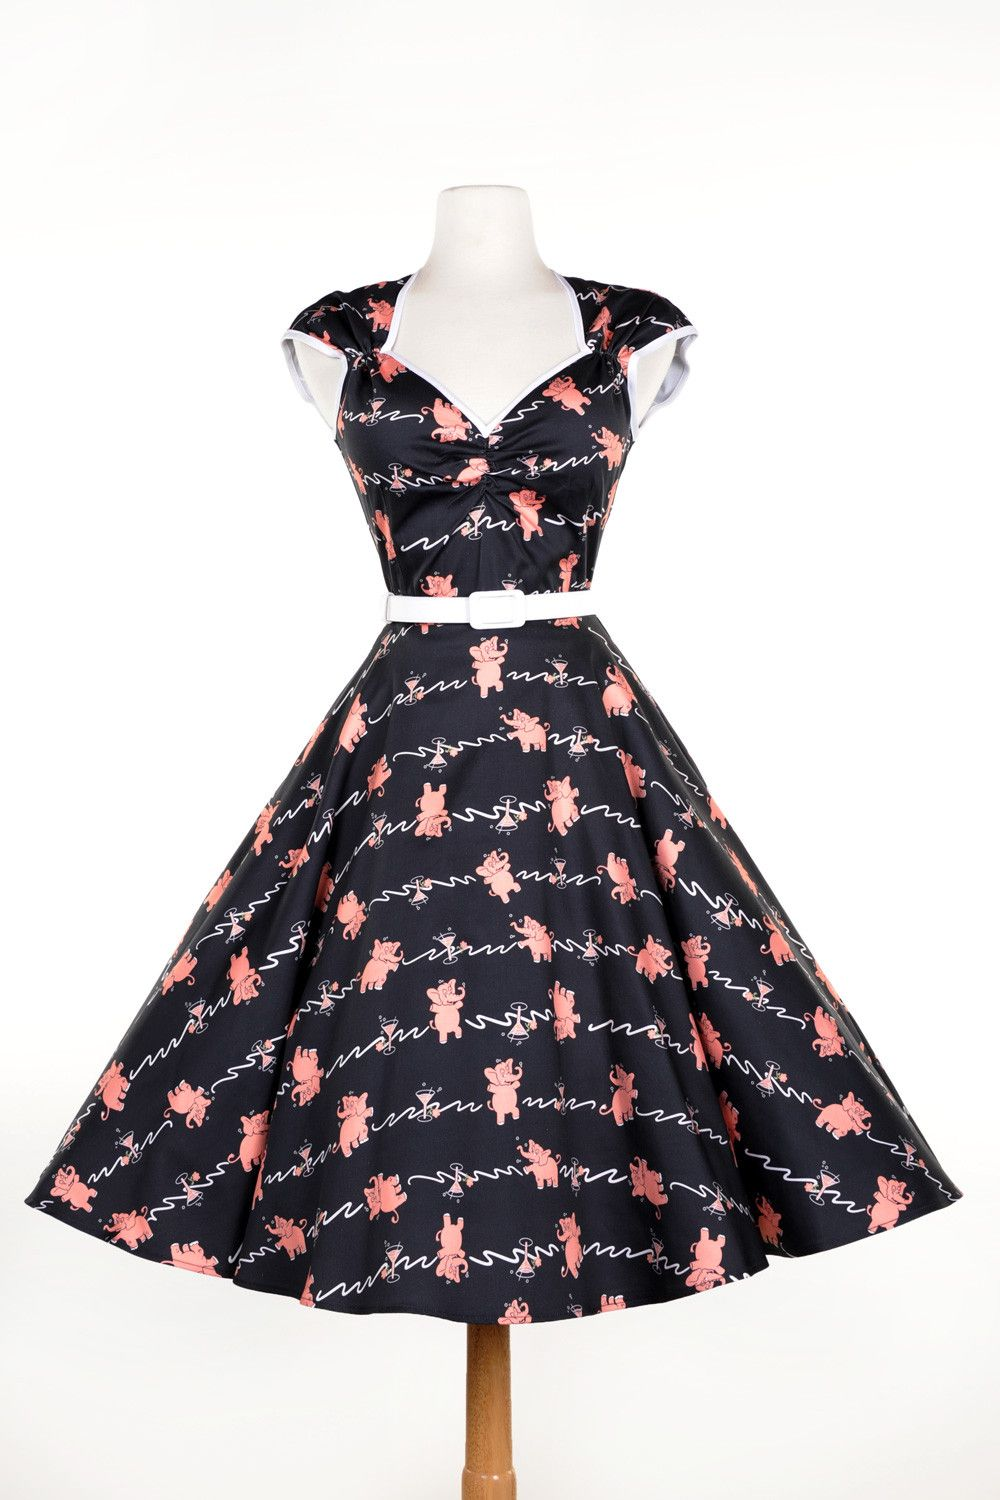 88f0bd9fc1b311 Heidi Dress in Tipsy Elephant Print